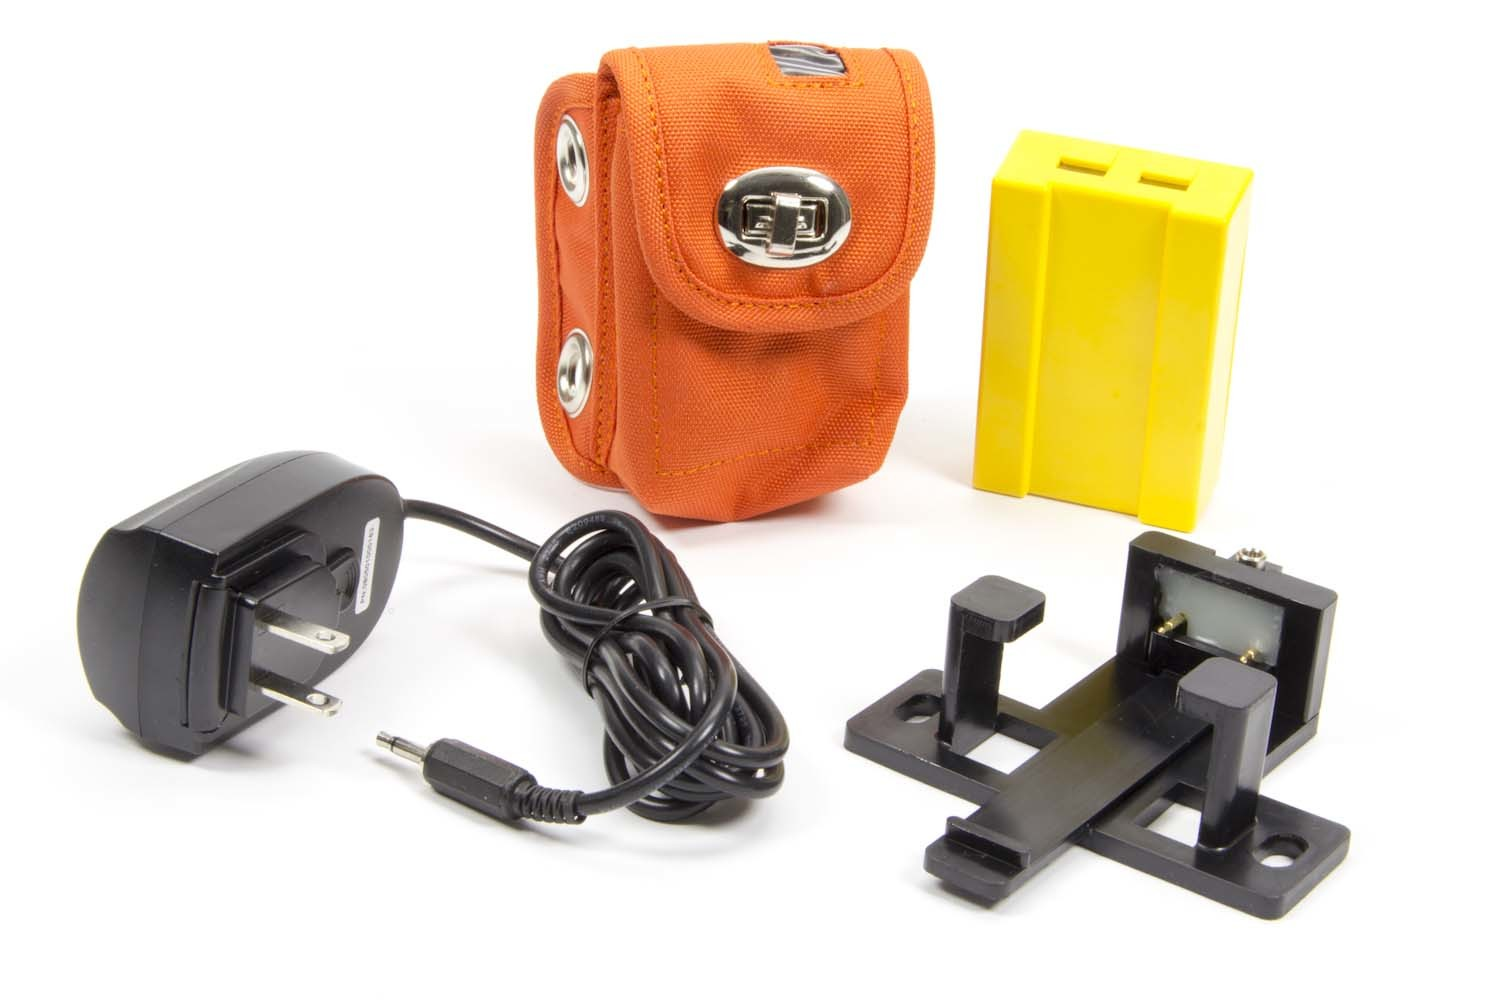 Transponder Package w/ Mnt. Pouch & Charger